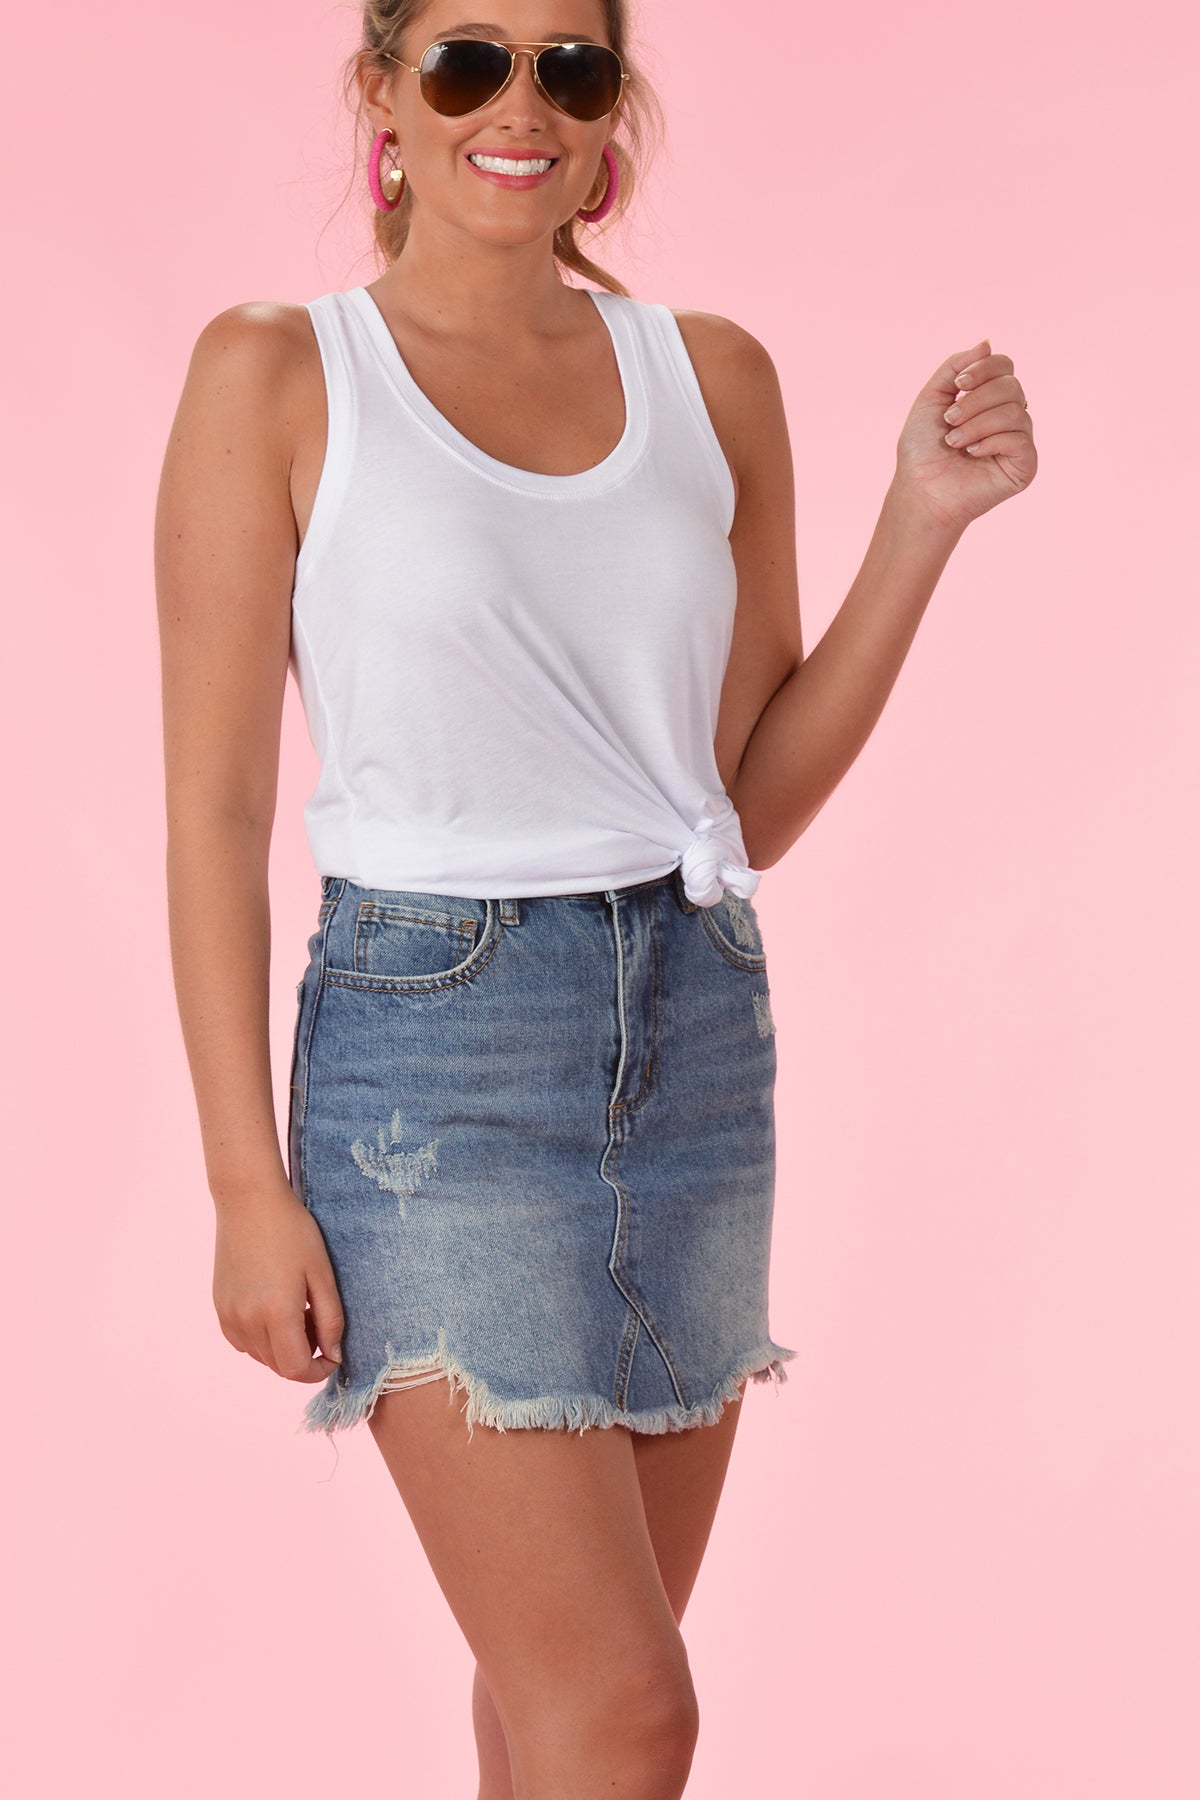 BUDDY LOVE SHARON DENIM SKIRT